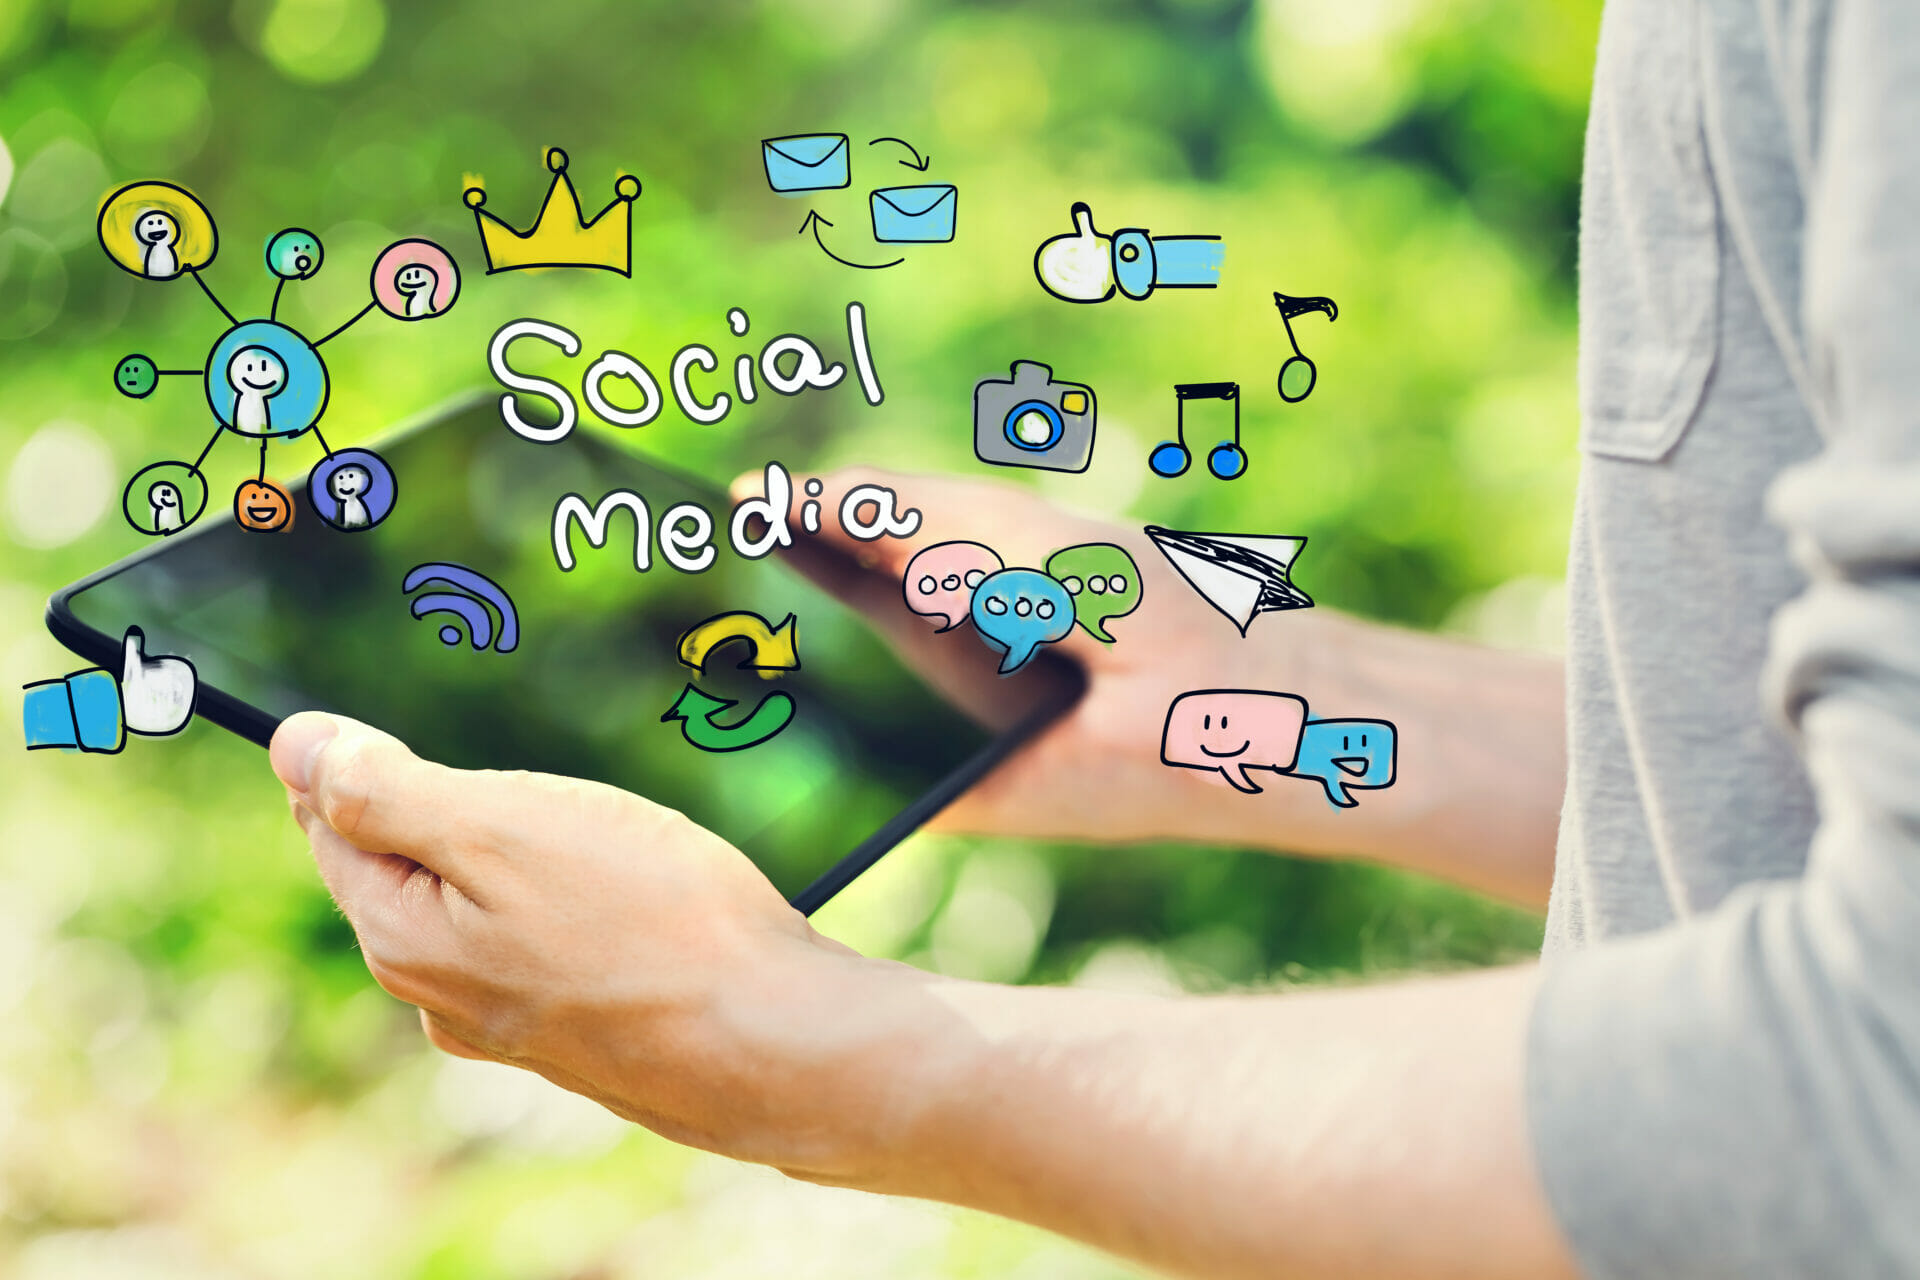 social media sharing importance, social media sharing buttons, social media sharing sites, social media sharing psychology, psychology behind sharing on social media